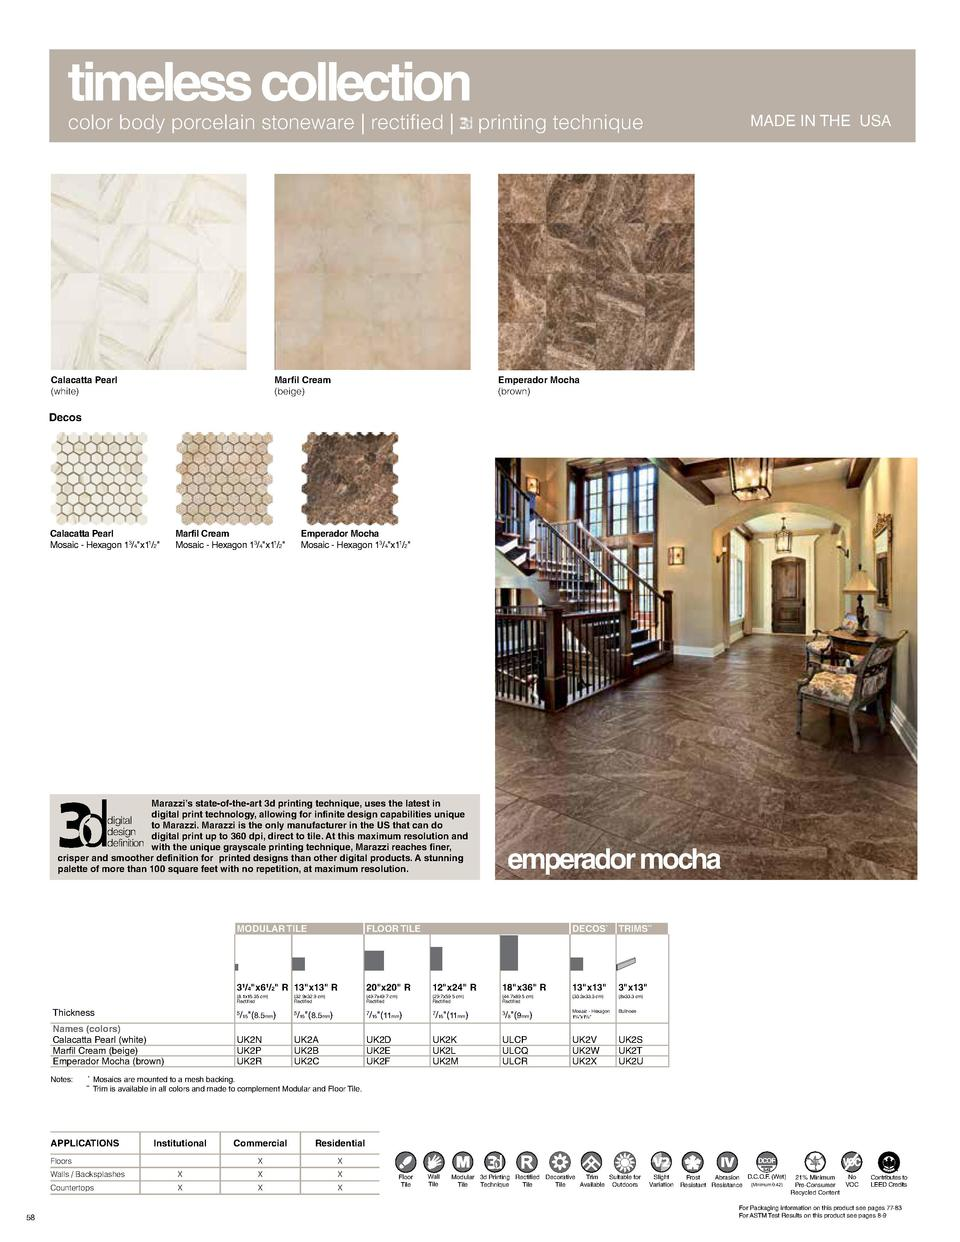 timeless collection color body porcelain stoneware   rectified    Calacatta Pearl  white   Marfil Cream  beige   printing ...